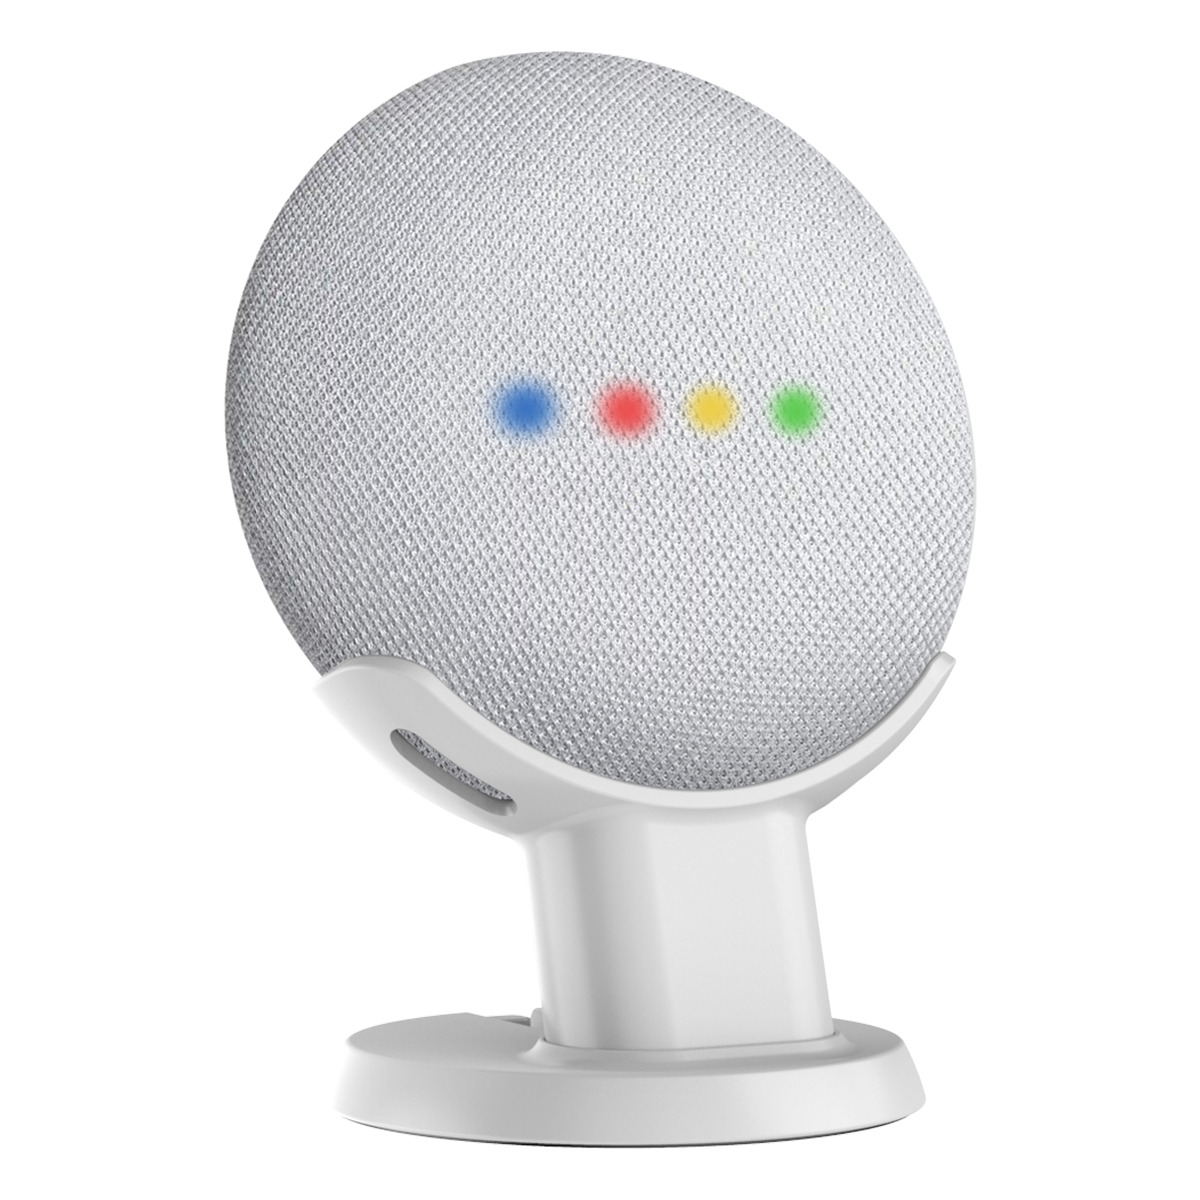 Desktop Stand For Google Home Mini Nest Mini Voice Assistants Compact Holder Case Plug in Kitchen Bedroom Study Audio Mount